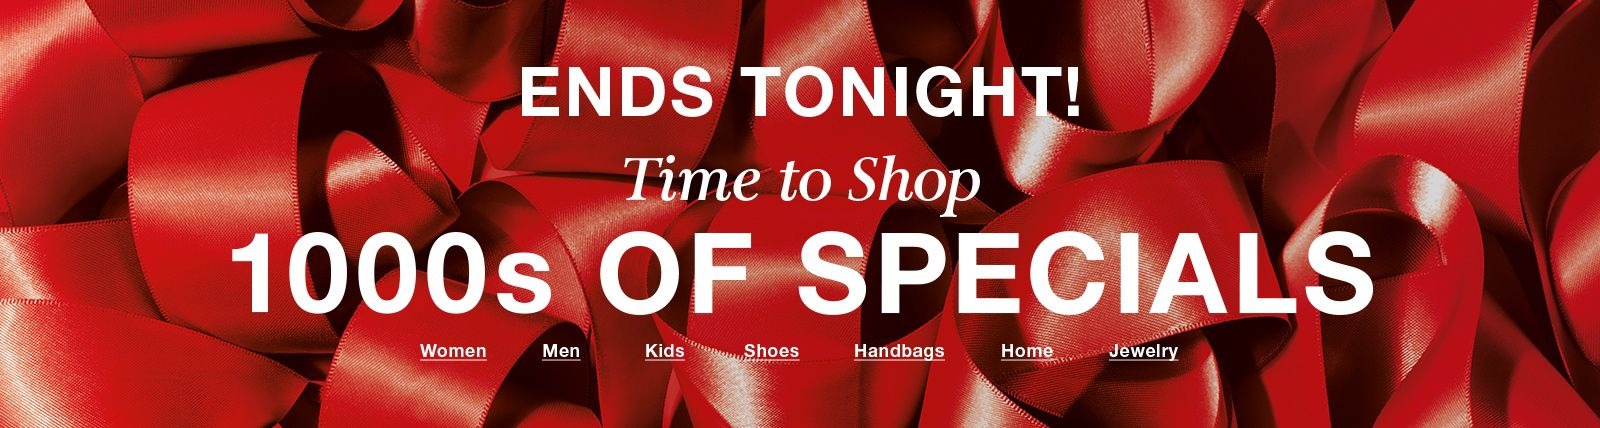 Ends Tonight! Time to shop, 1000s of Specials, Women, Men, Kids, Shoes, Handbags, Home, Jewelry